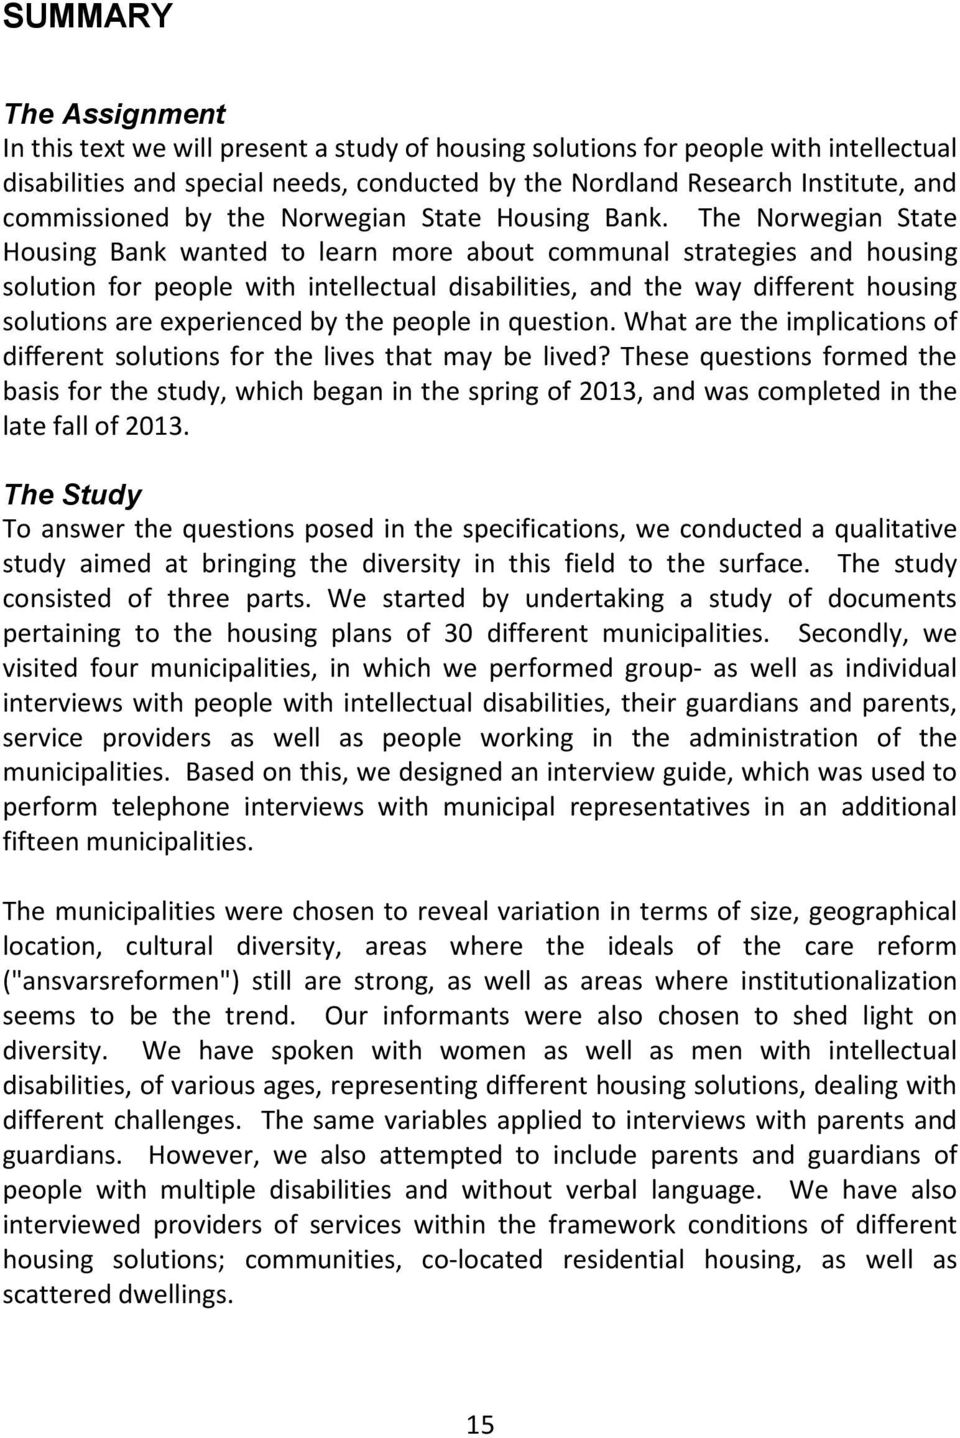 The Norwegian State Housing Bank wanted to learn more about communal strategies and housing solution for people with intellectual disabilities, and the way different housing solutions are experienced